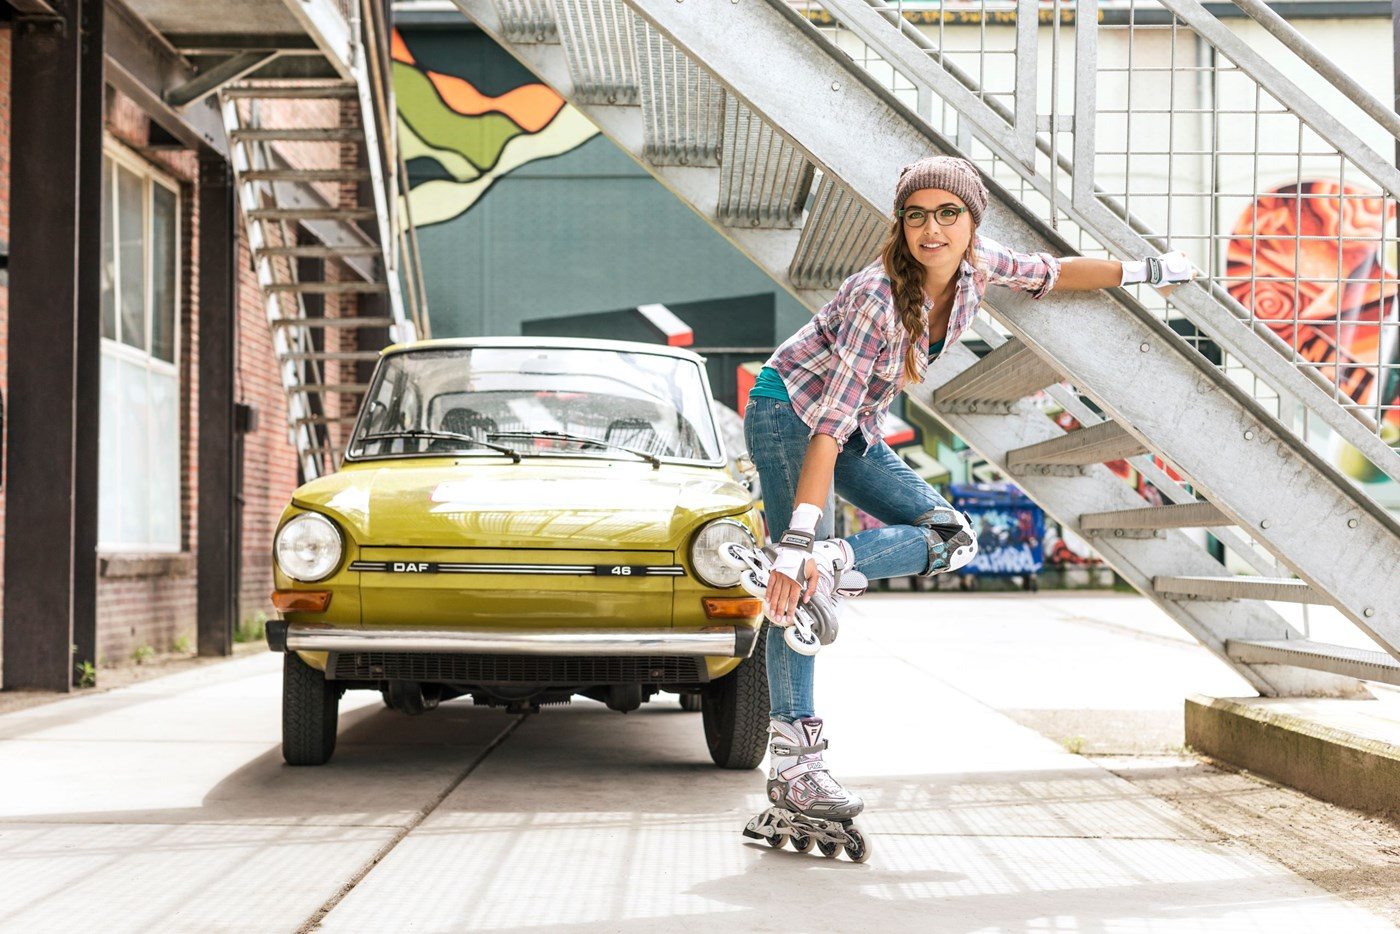 Female roller skater wearing eyeglasses infront of car beside outdoor staircase